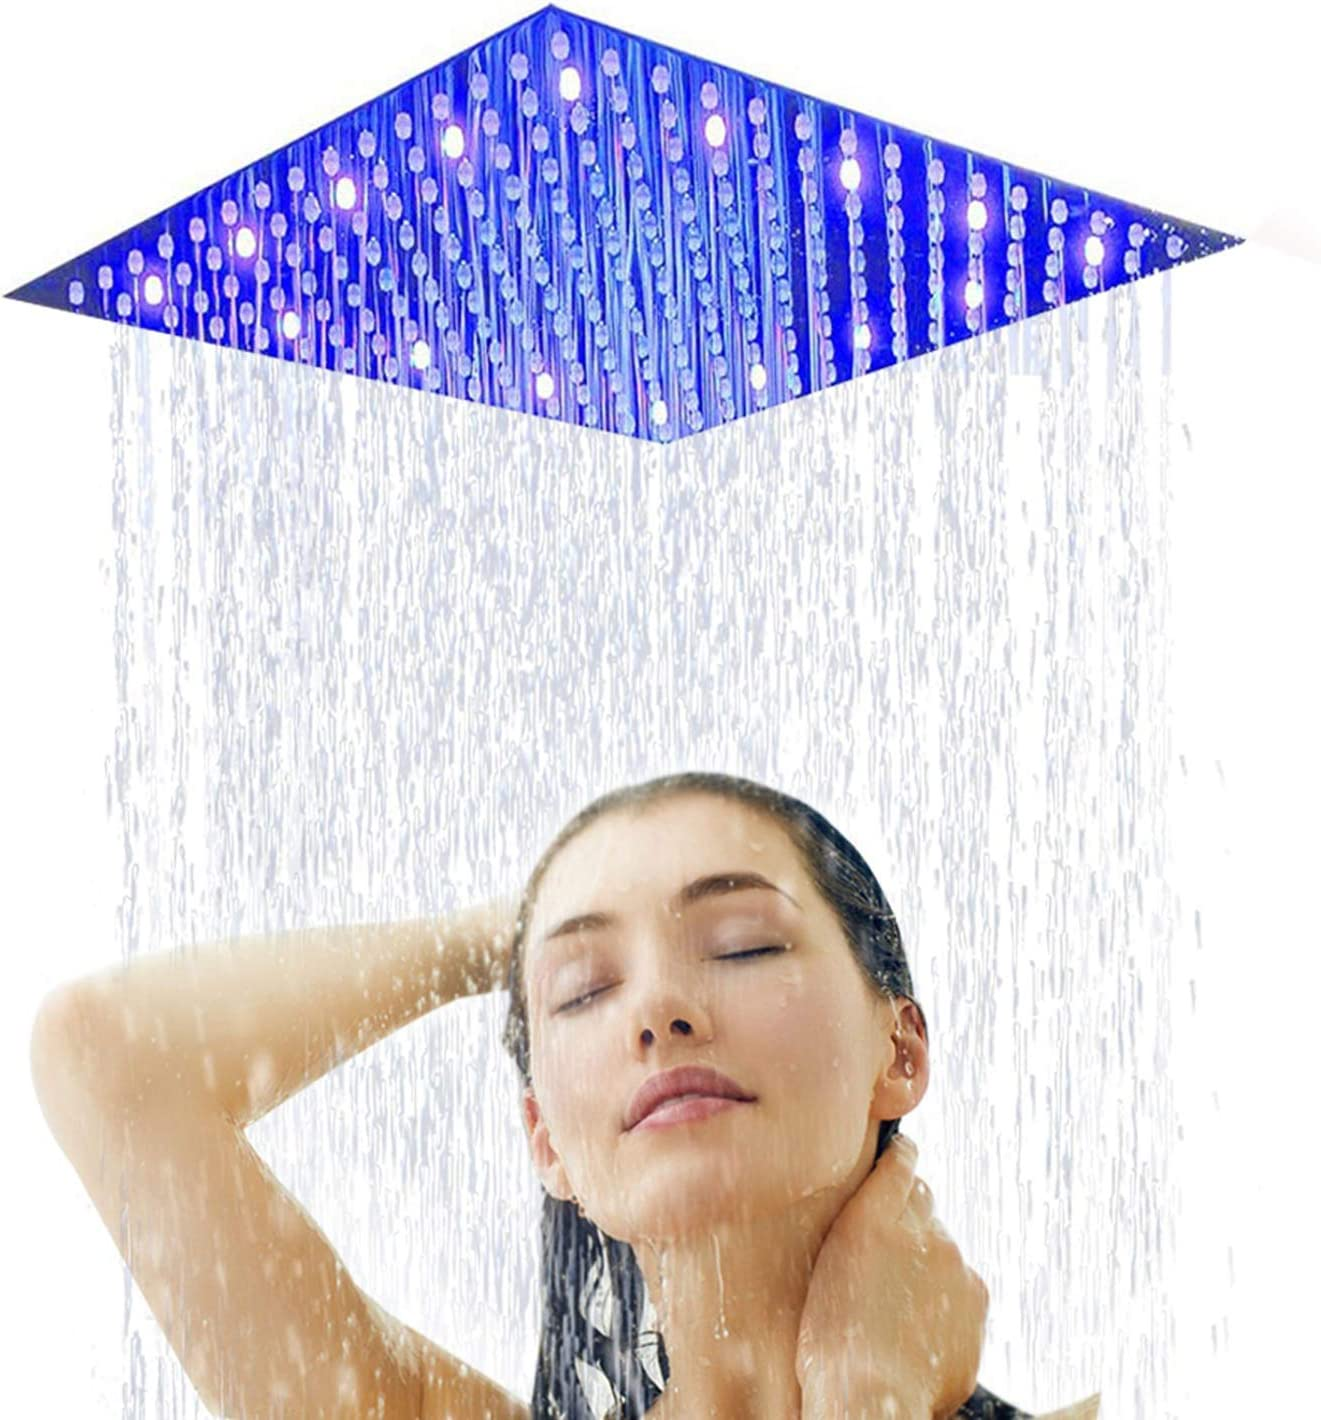 Sd 16Square Brushed Nickel Rain Showerhead Ultra Thin Rainfall Bath Shower with Silicone Nozzle Easy to Clean and Install Large Stainless Steel Shower Head